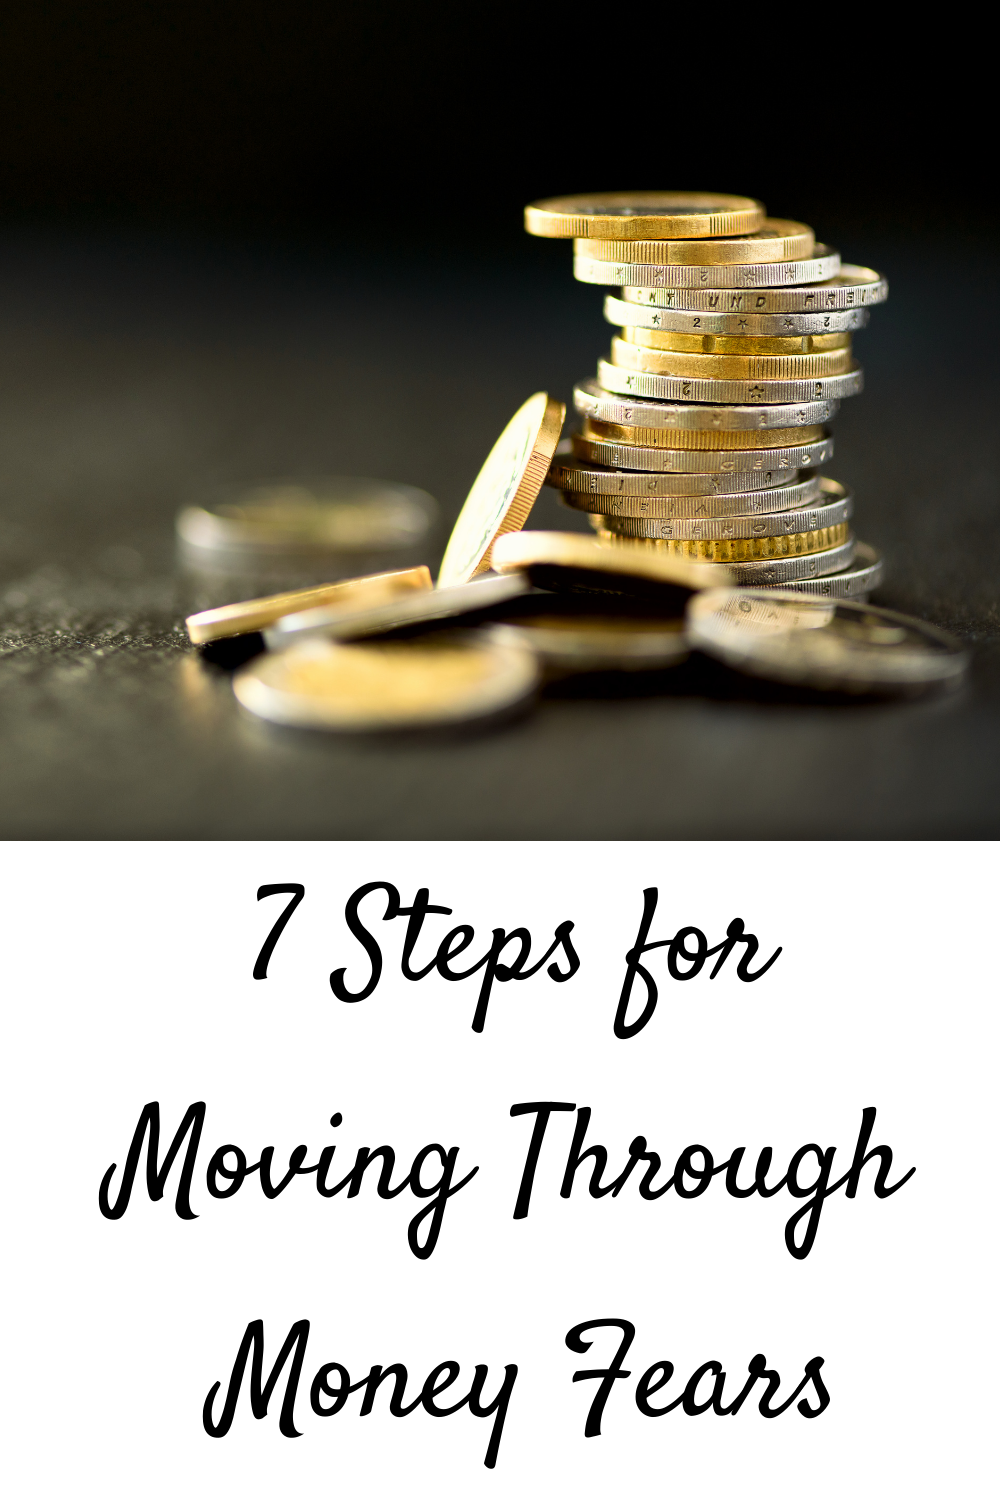 7 Steps for Moving Through Money Fears